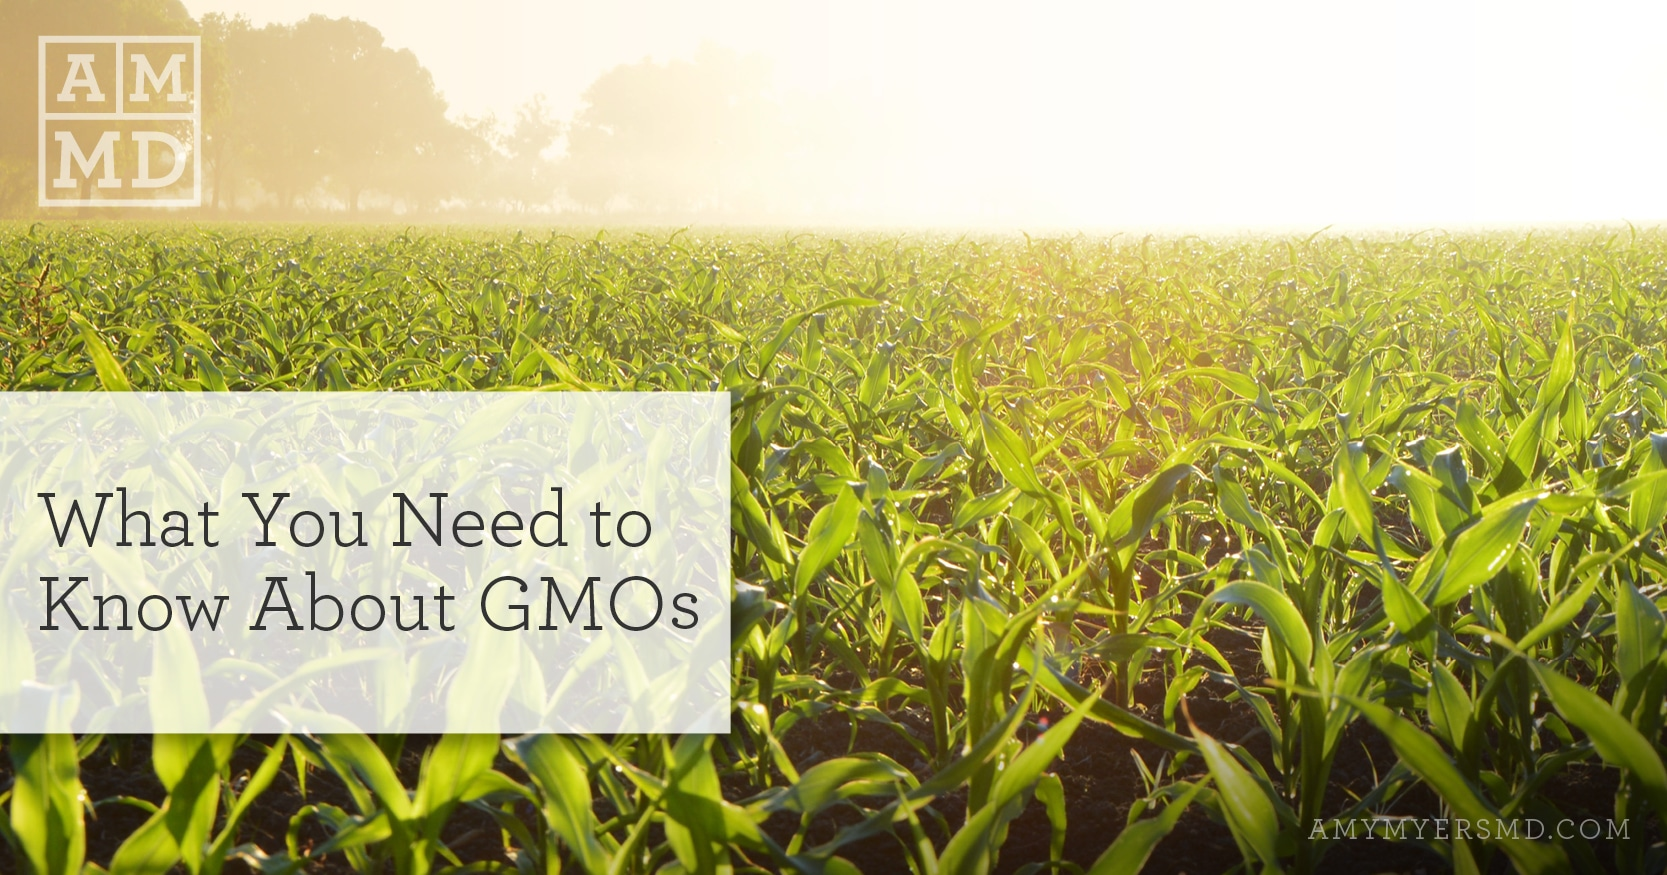 What You Need to Know About GMOs - A Corn Field - Featured Image - Amy Myers MD